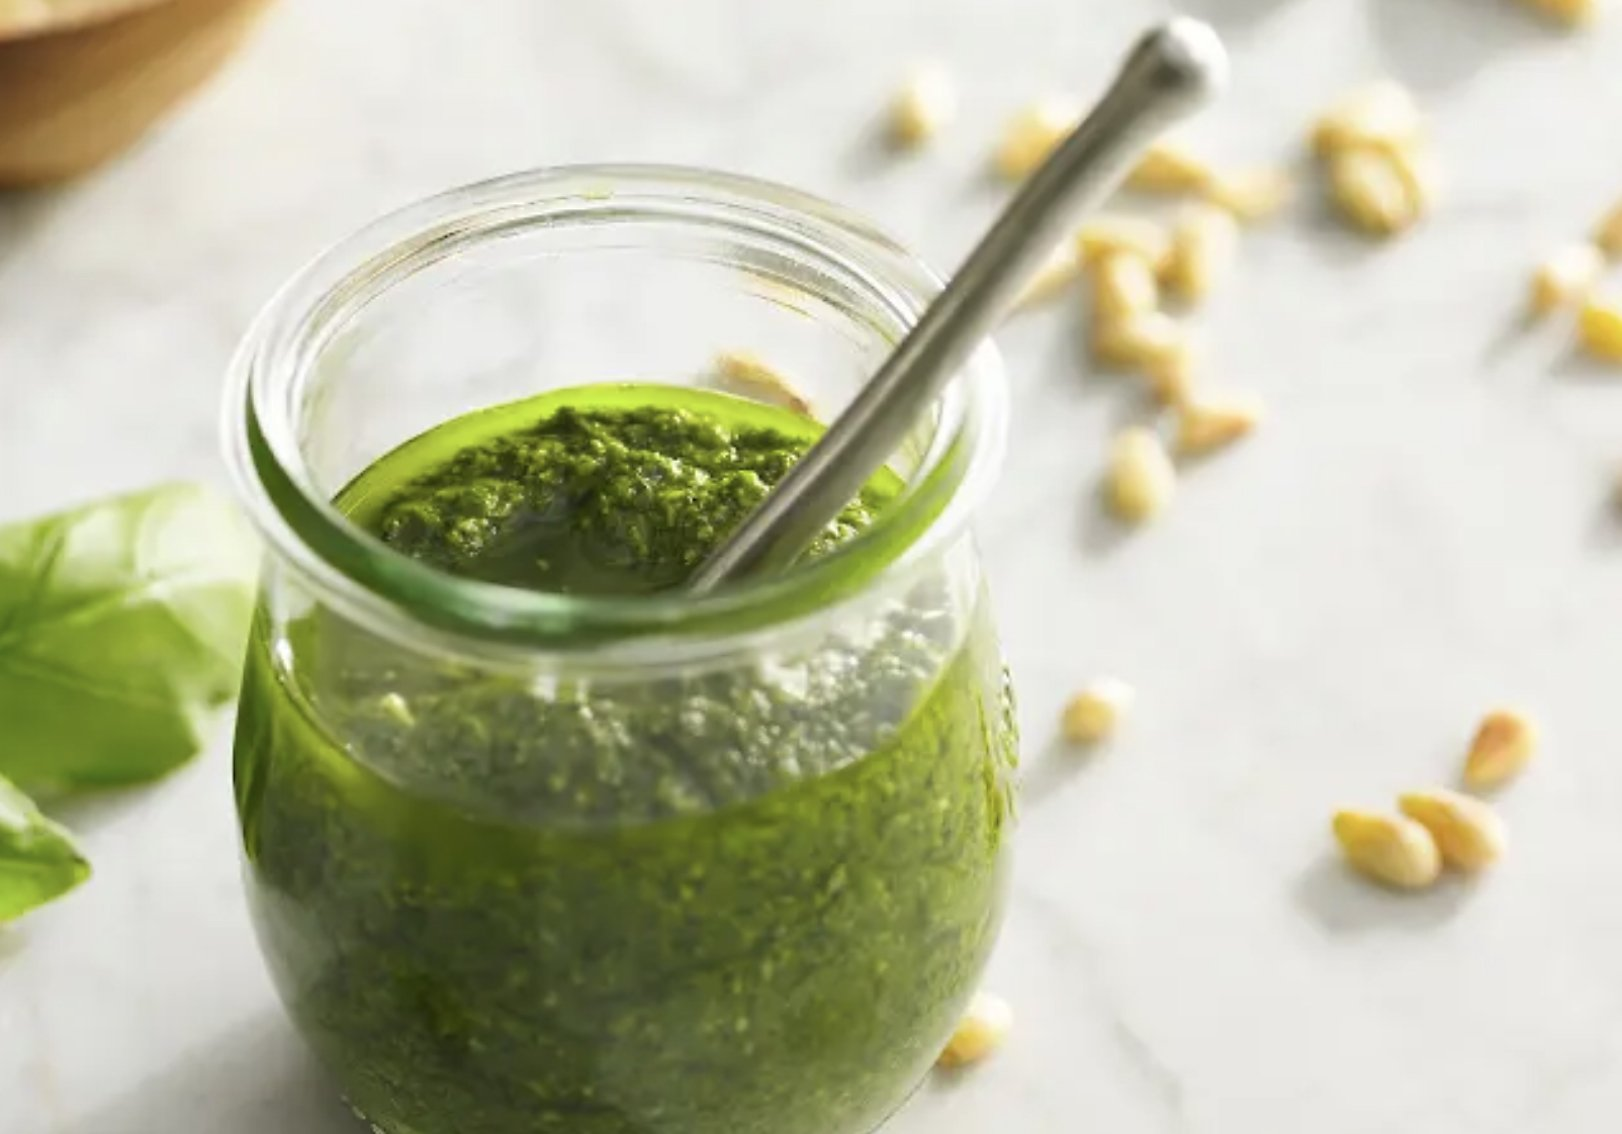 A glass jar filled with pesto